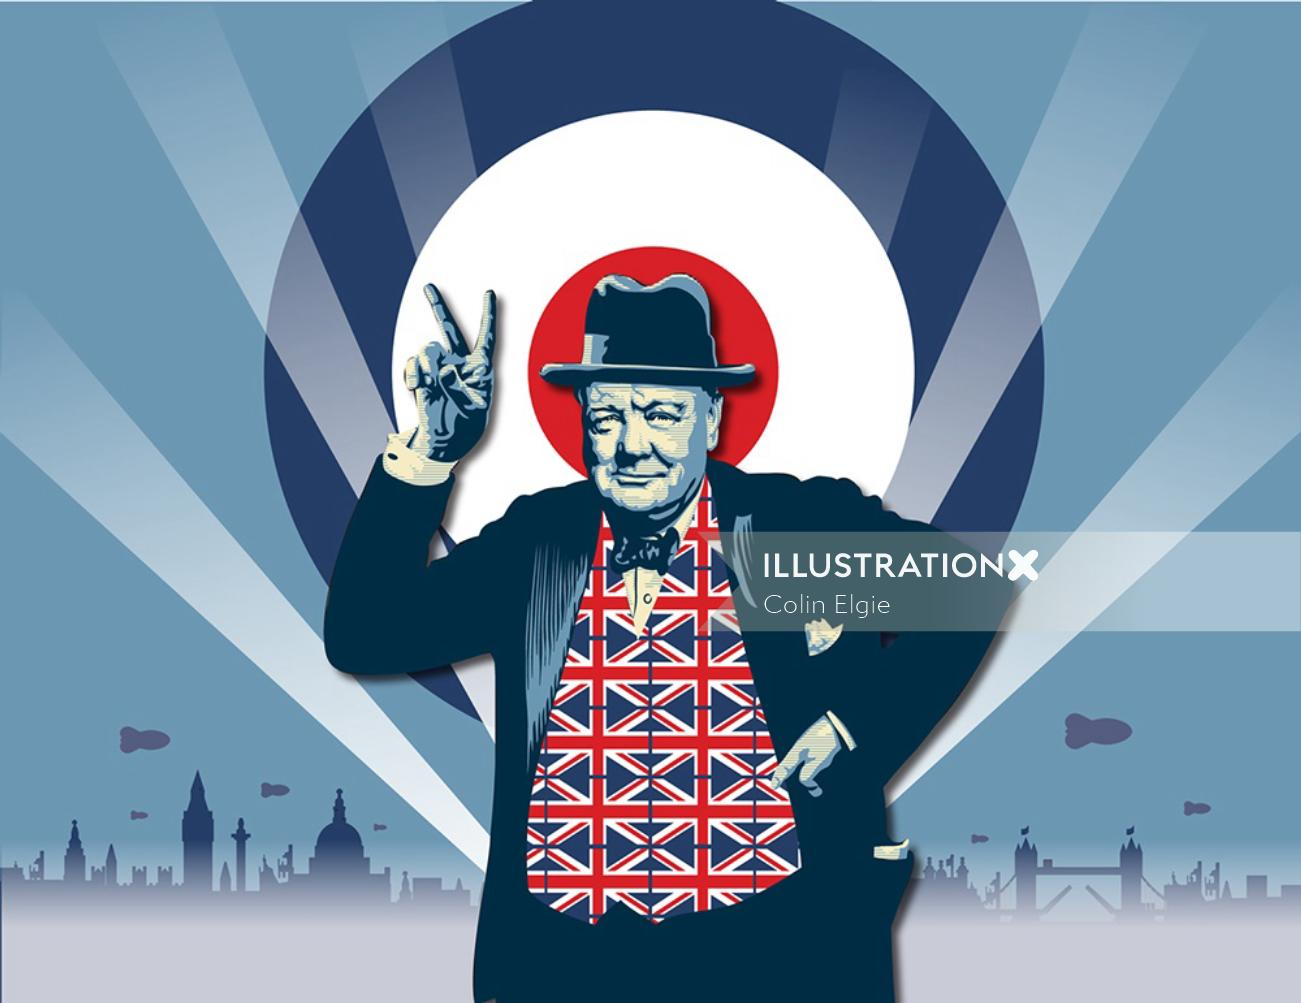 Graphic of man in British dress with victory symbol